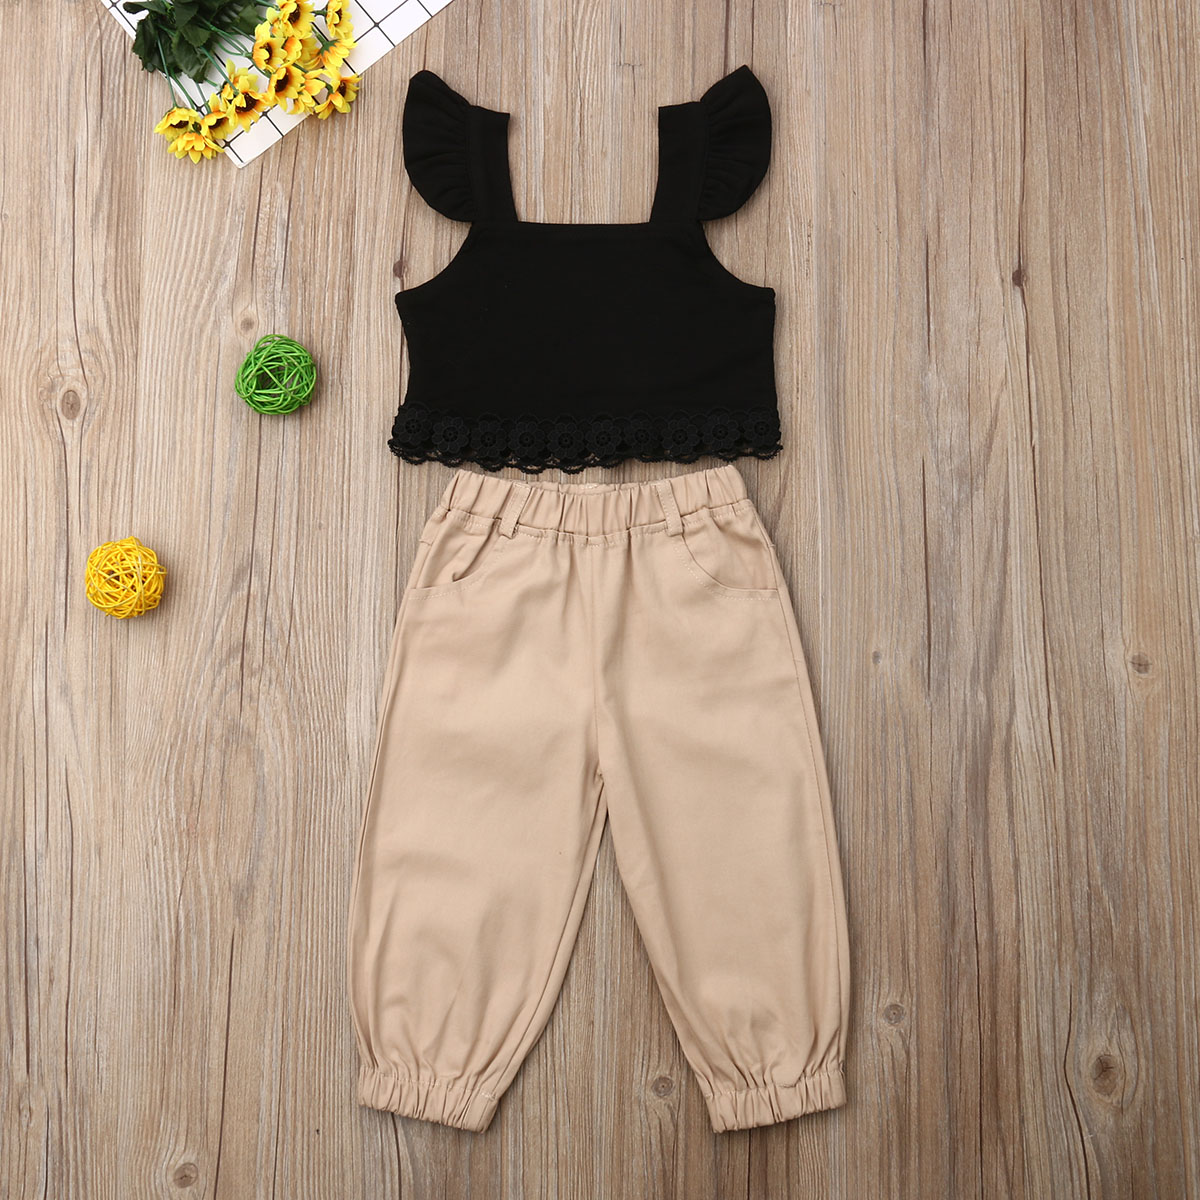 Pudcoco Summer Toddler Baby Girl Clothes Fly Sleeve Lace Cropped Tops Casual Long Pants 2Pcs Outfits Set